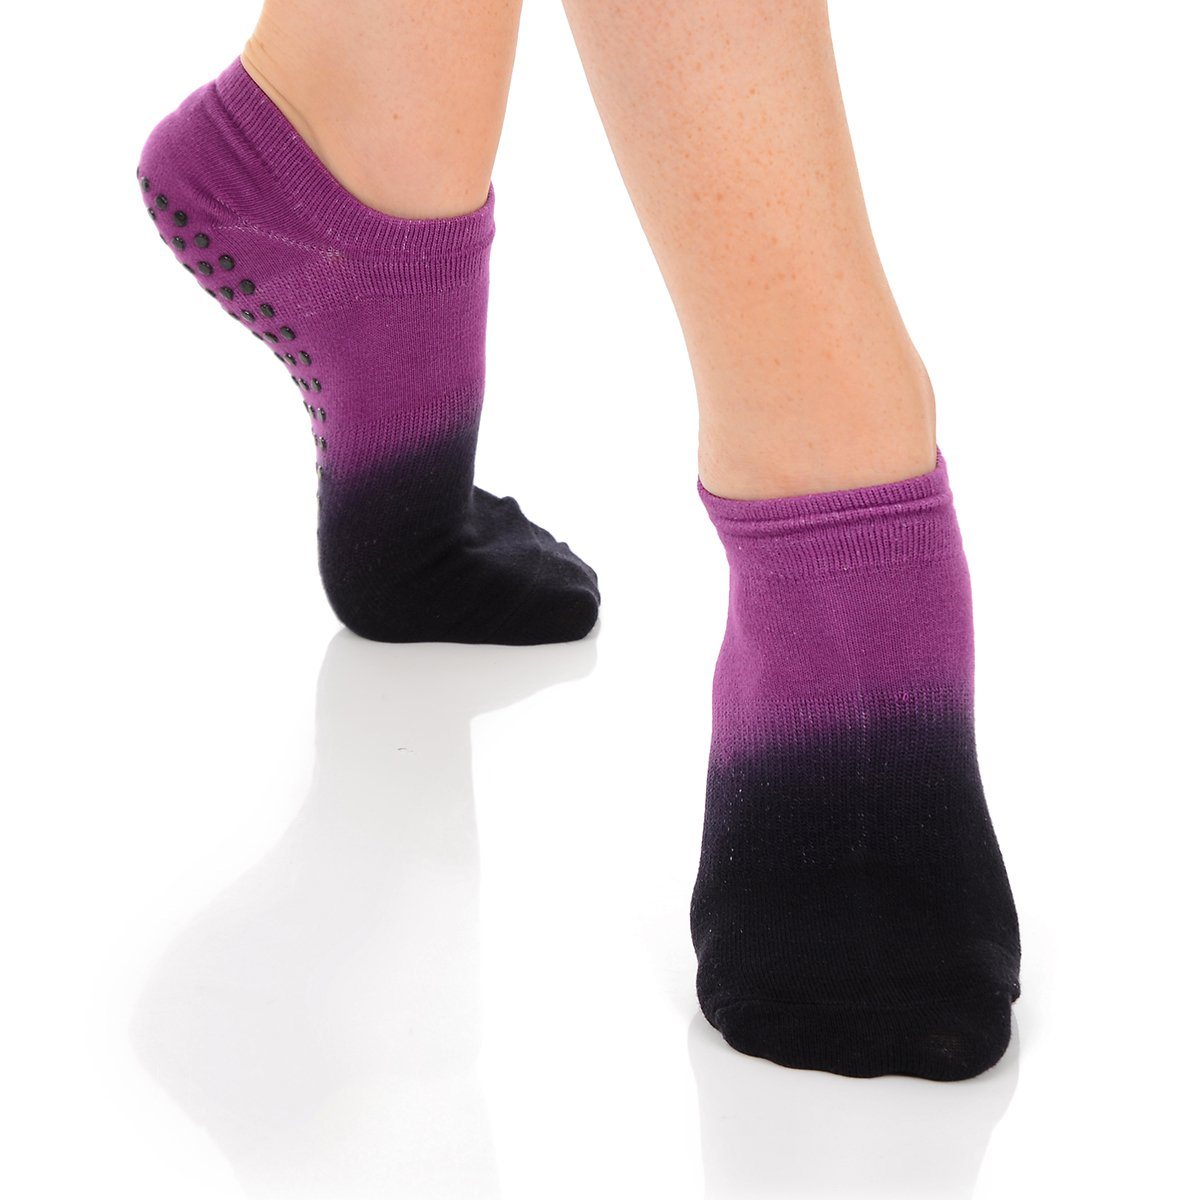 Great Soles Ombre Dyed Grip Socks for Women - Non Slip Yoga Socks for Pilates, Barre, Ballet (Berry/Black) by Great Soles (Image #1)